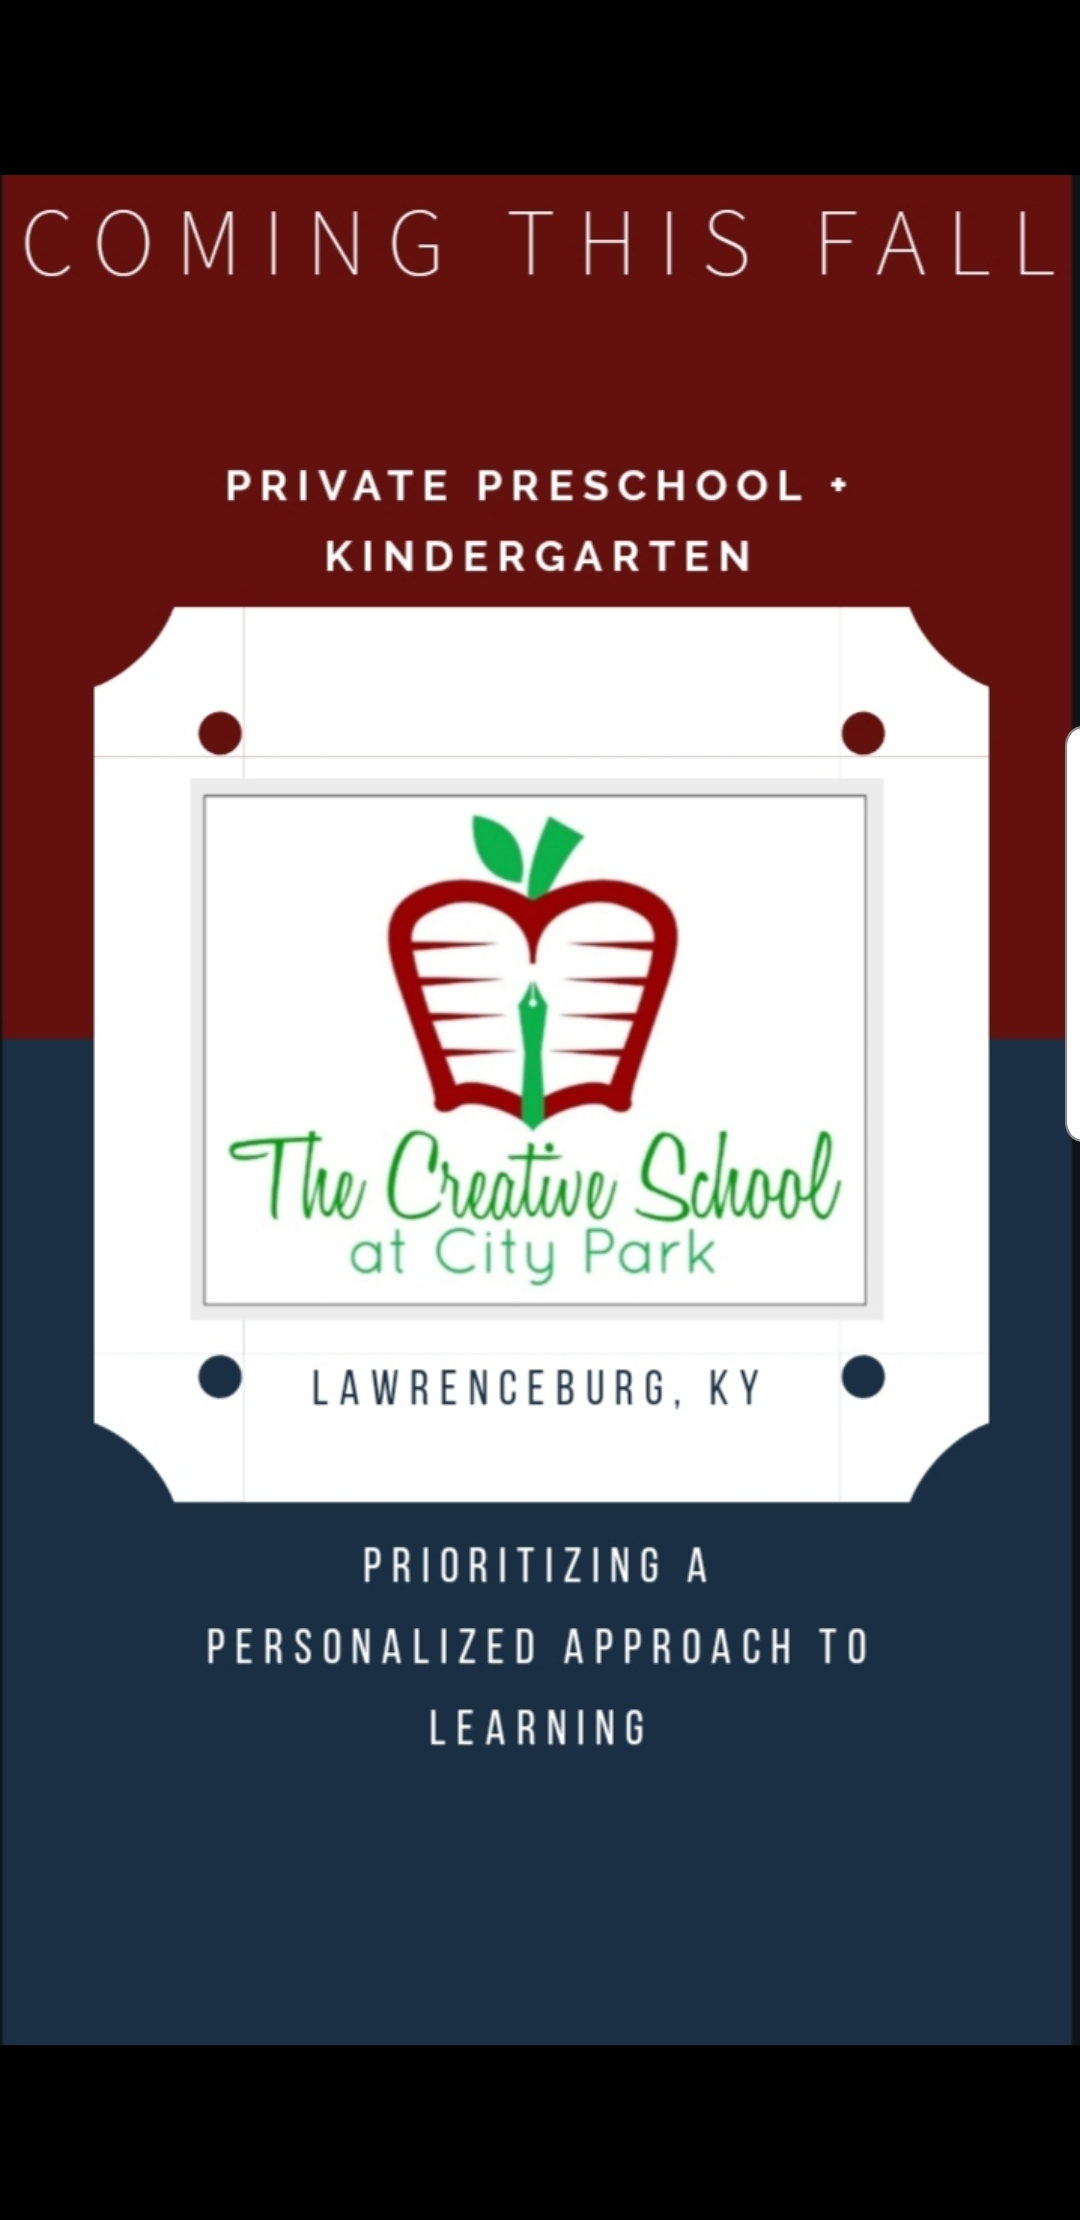 Located in the West Park Plaza of Lawrenceburg, Kentucky, The Creative School at City Park will be opening Fall of 2019! We look forward to continuing a grassroots transformation of early childhood education. Our Reggio-Inspired and Play-Based Model prioritizes a personalized approach to learning.